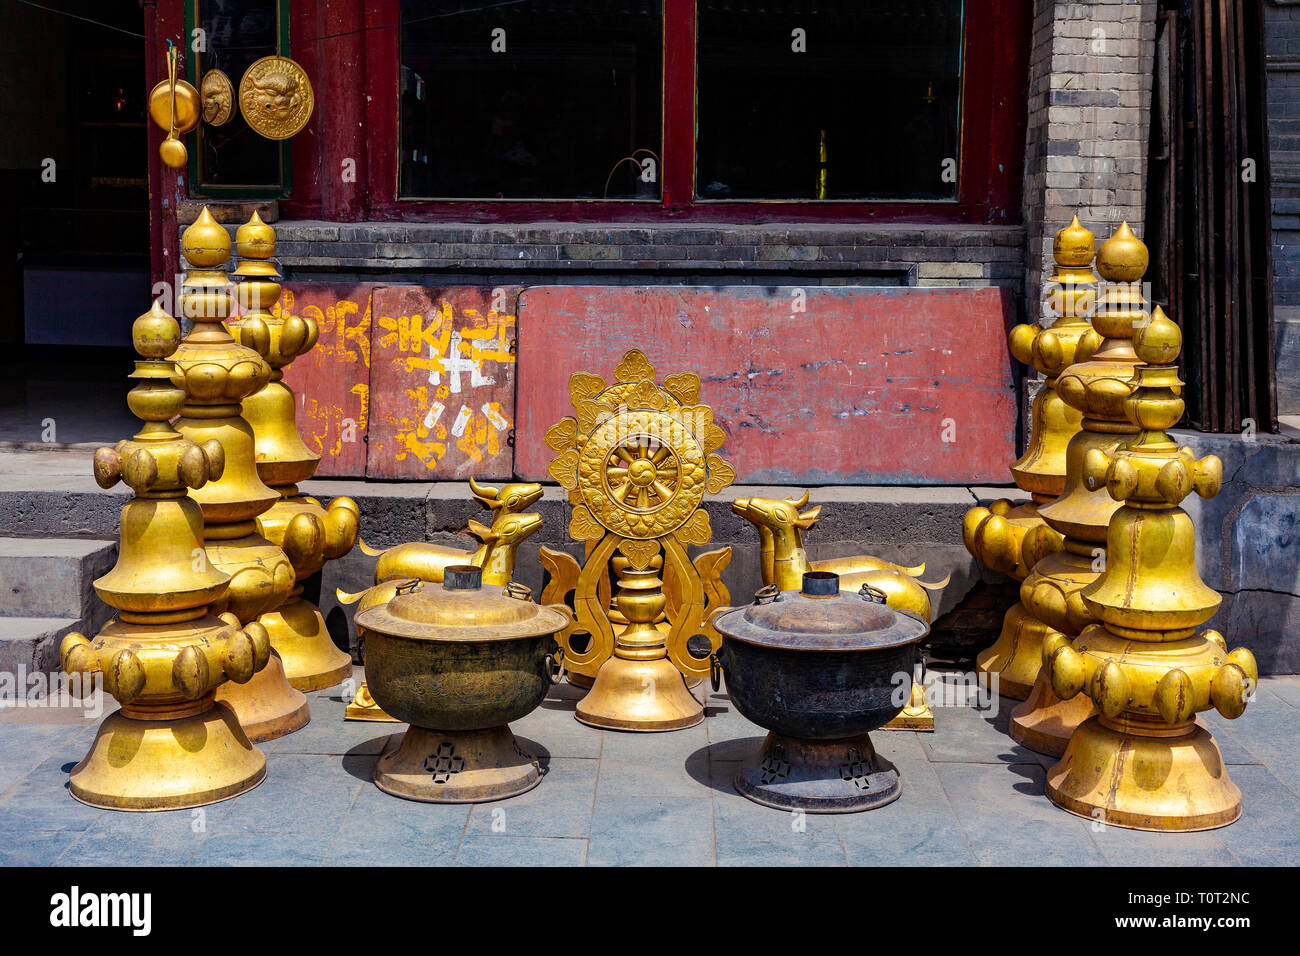 Holy artifacts from Dazhao Lamaist Buddhist temple in Hohhot, capital of Inner Mongolia. The main hall is a lamasery combining both Tibetan and Han ar - Stock Image